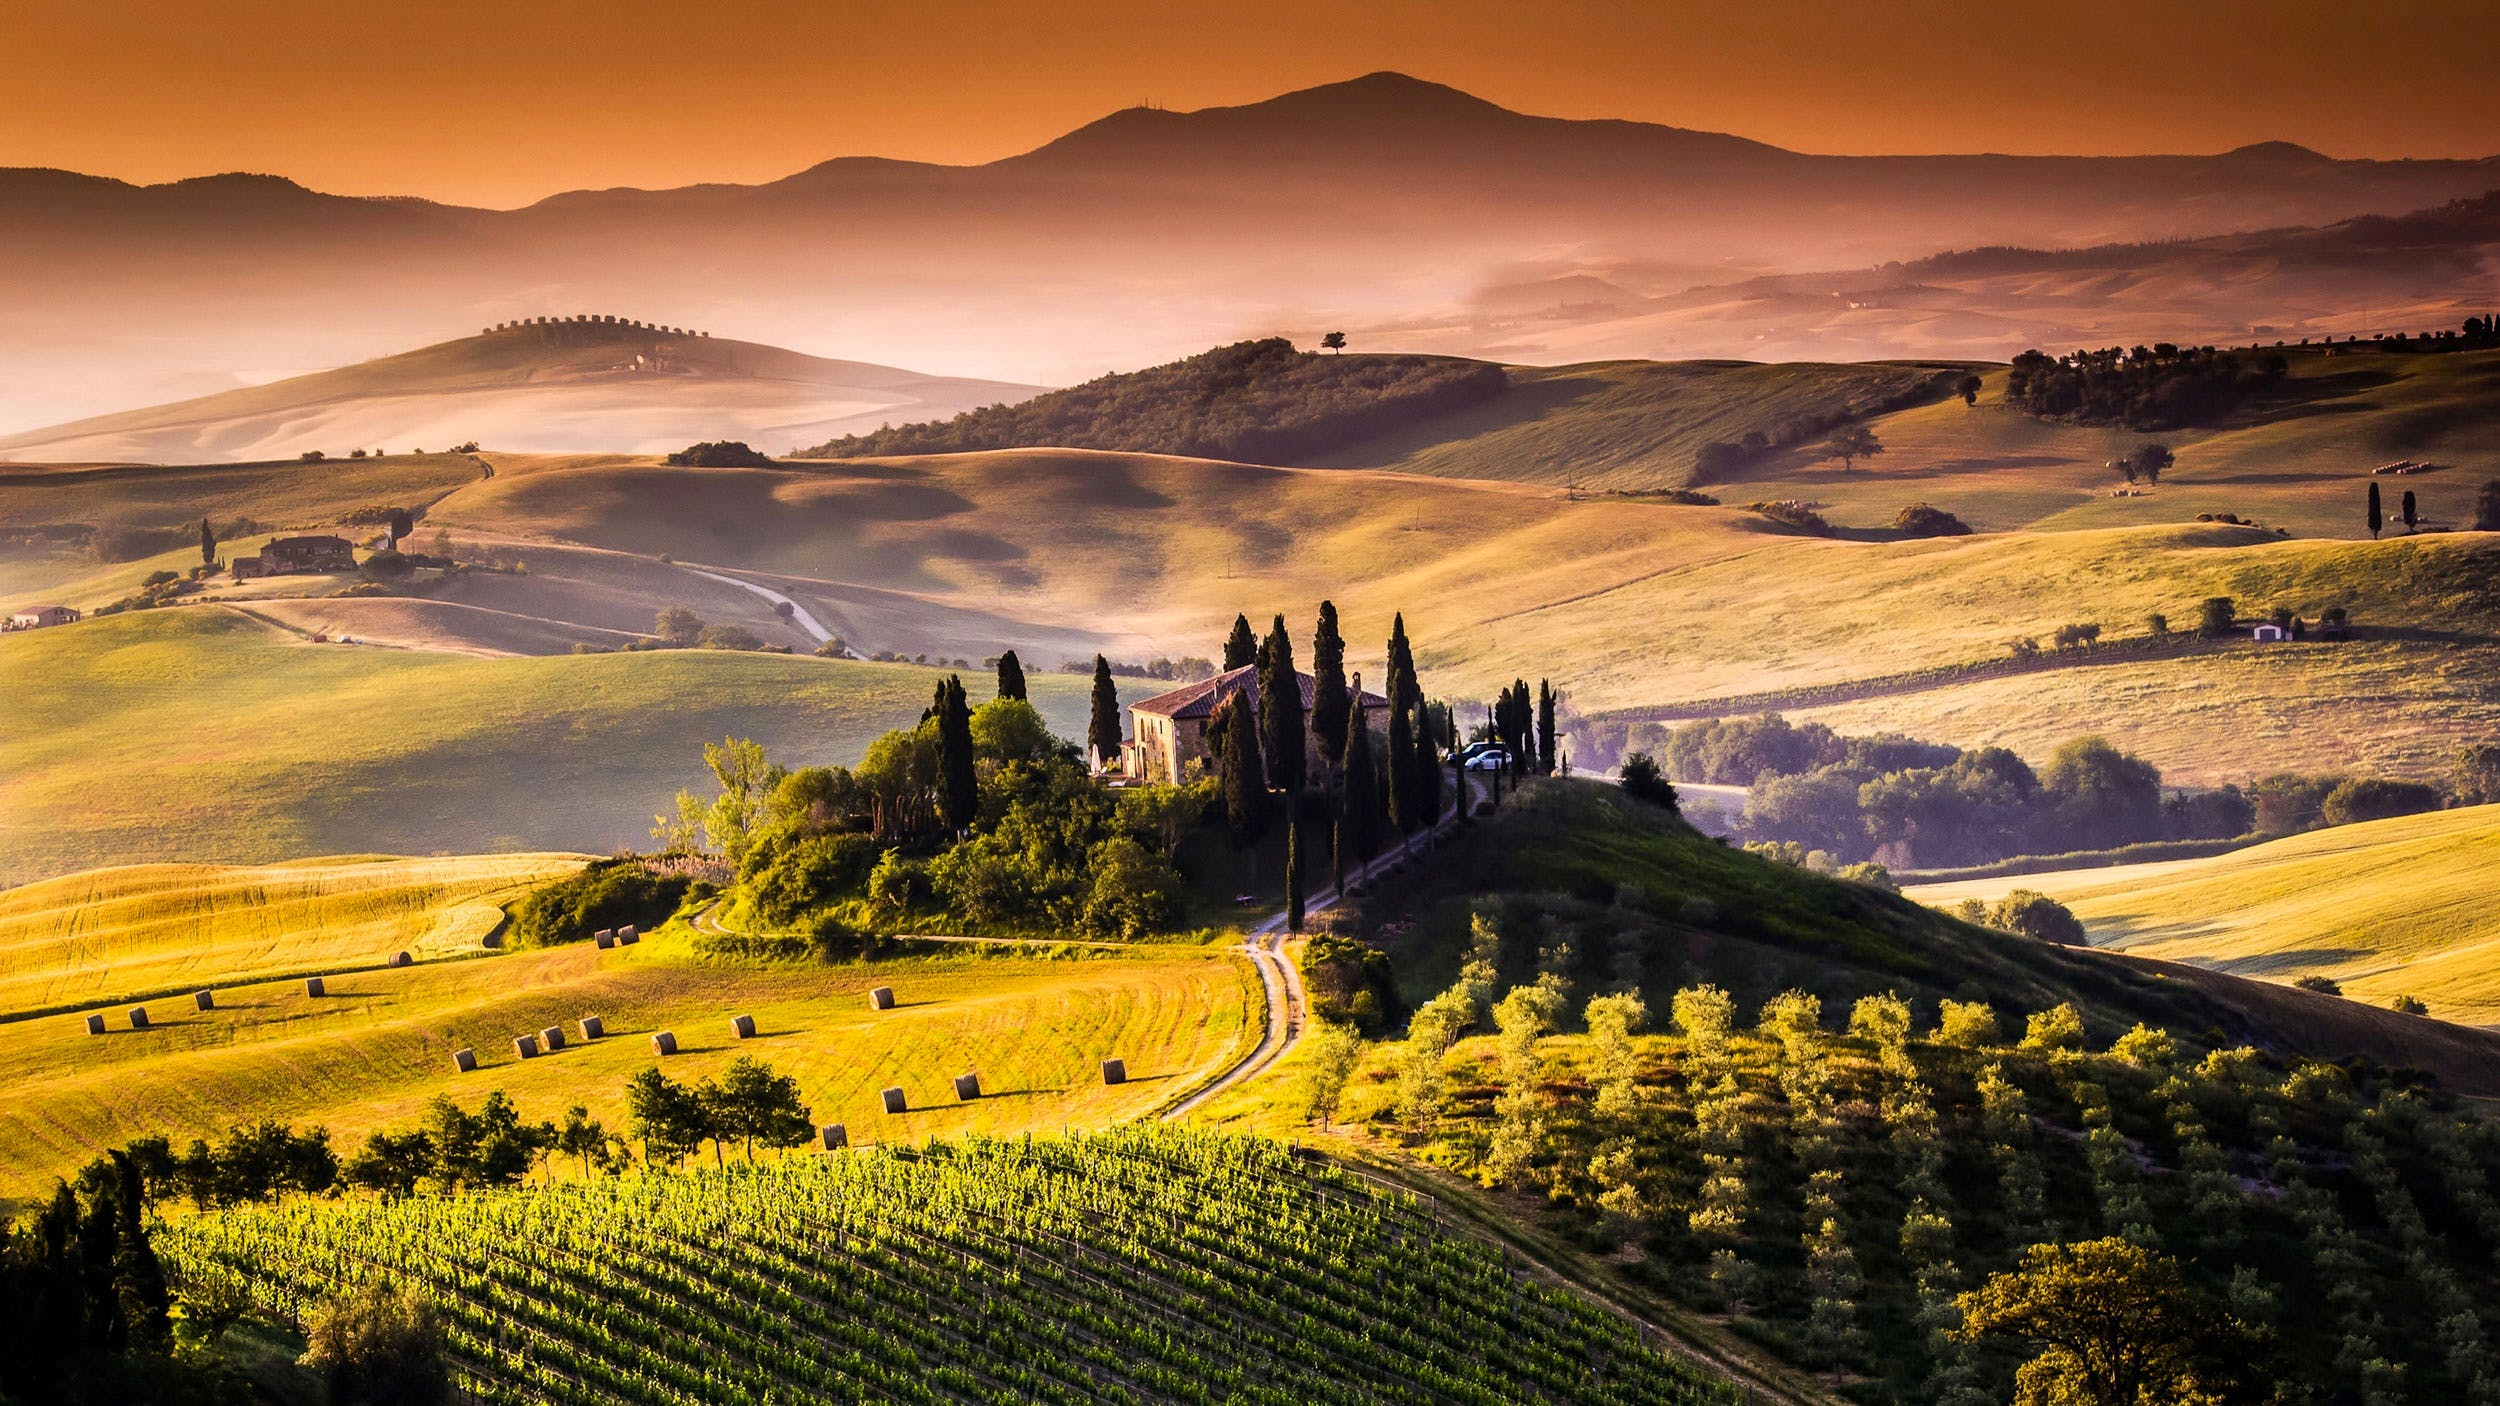 tuscany italy 2018 tourist travel guide to holidays in tuscany